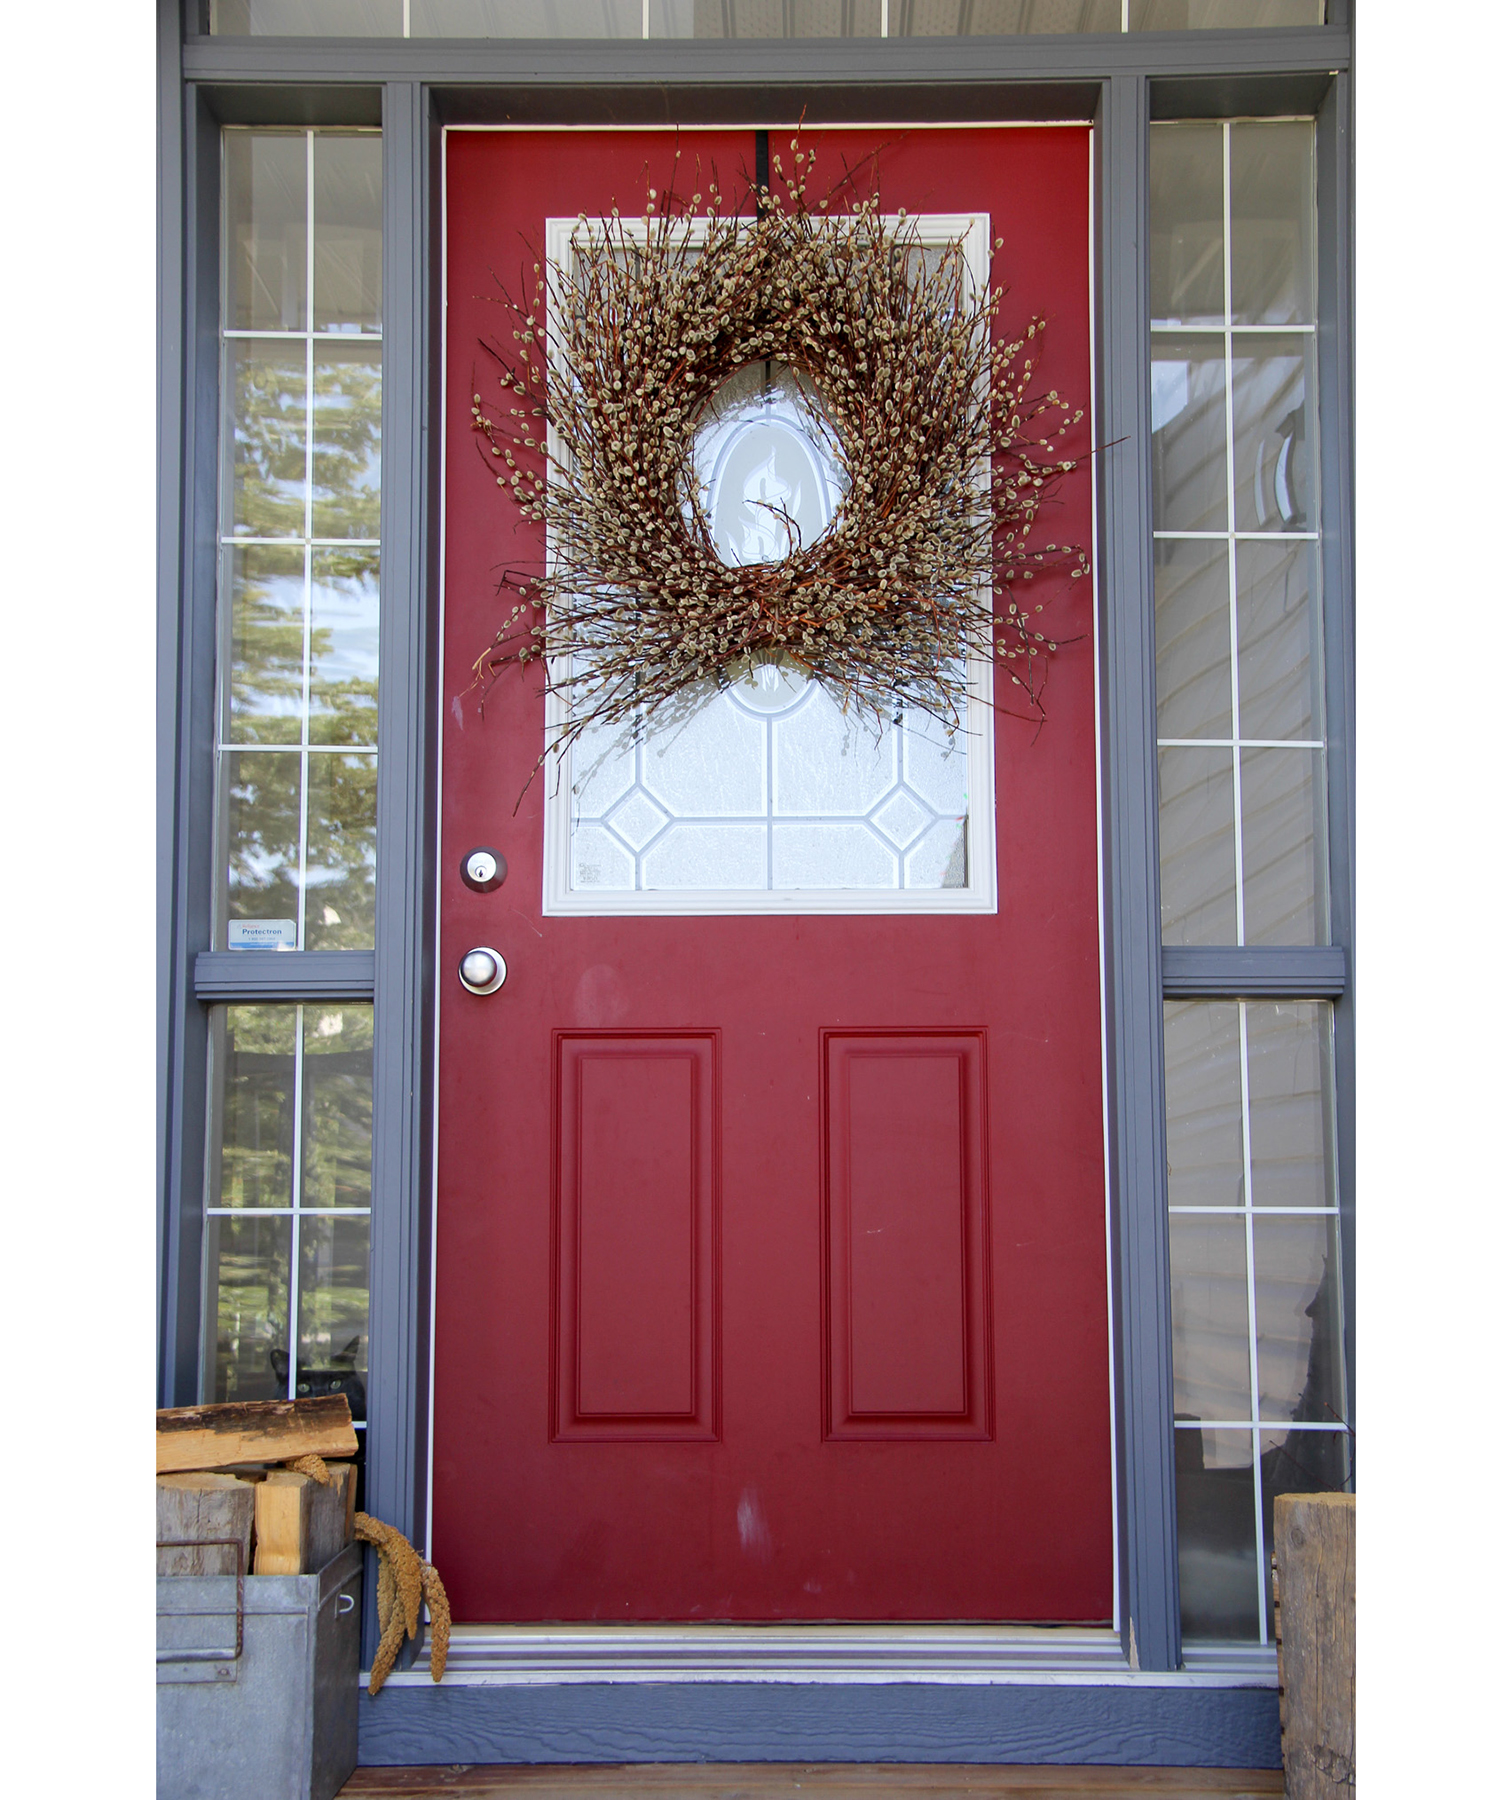 Dark red front door with wreath